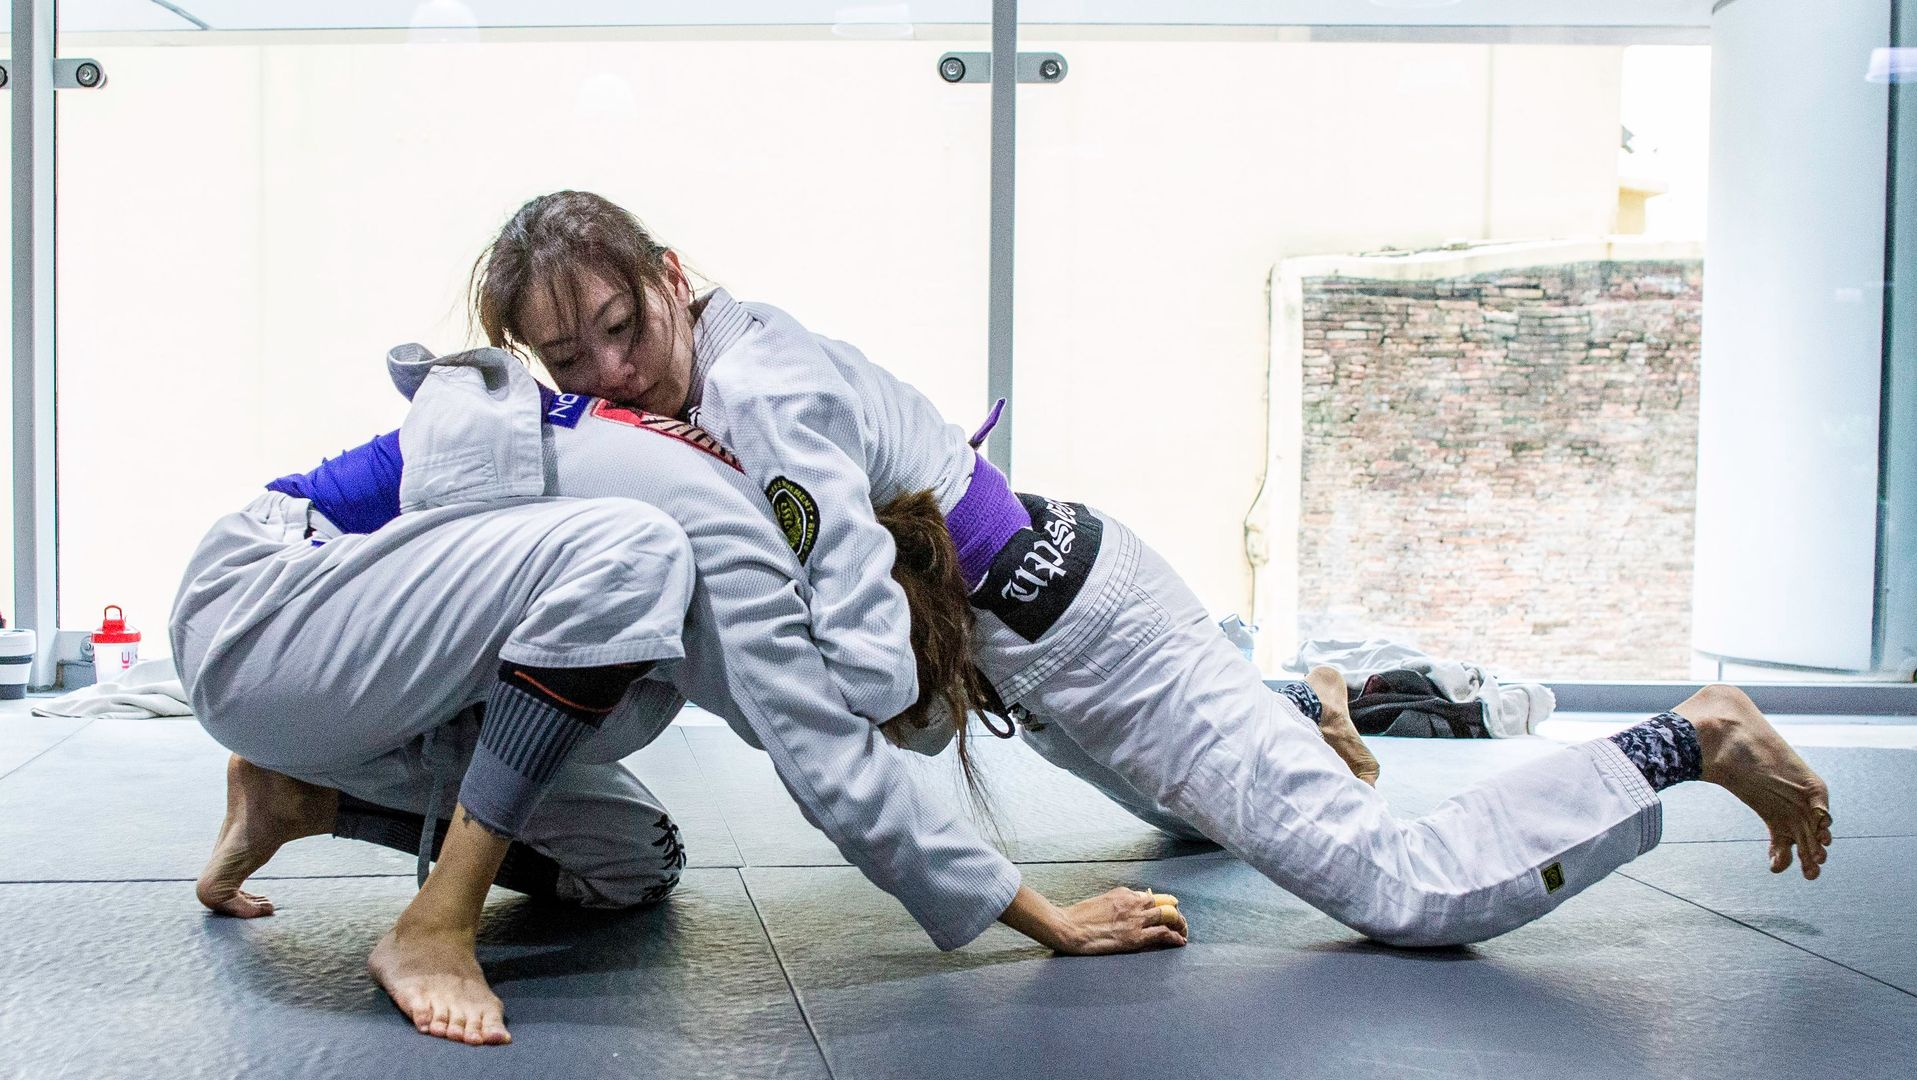 A student doing a front headlock in BJJ class.